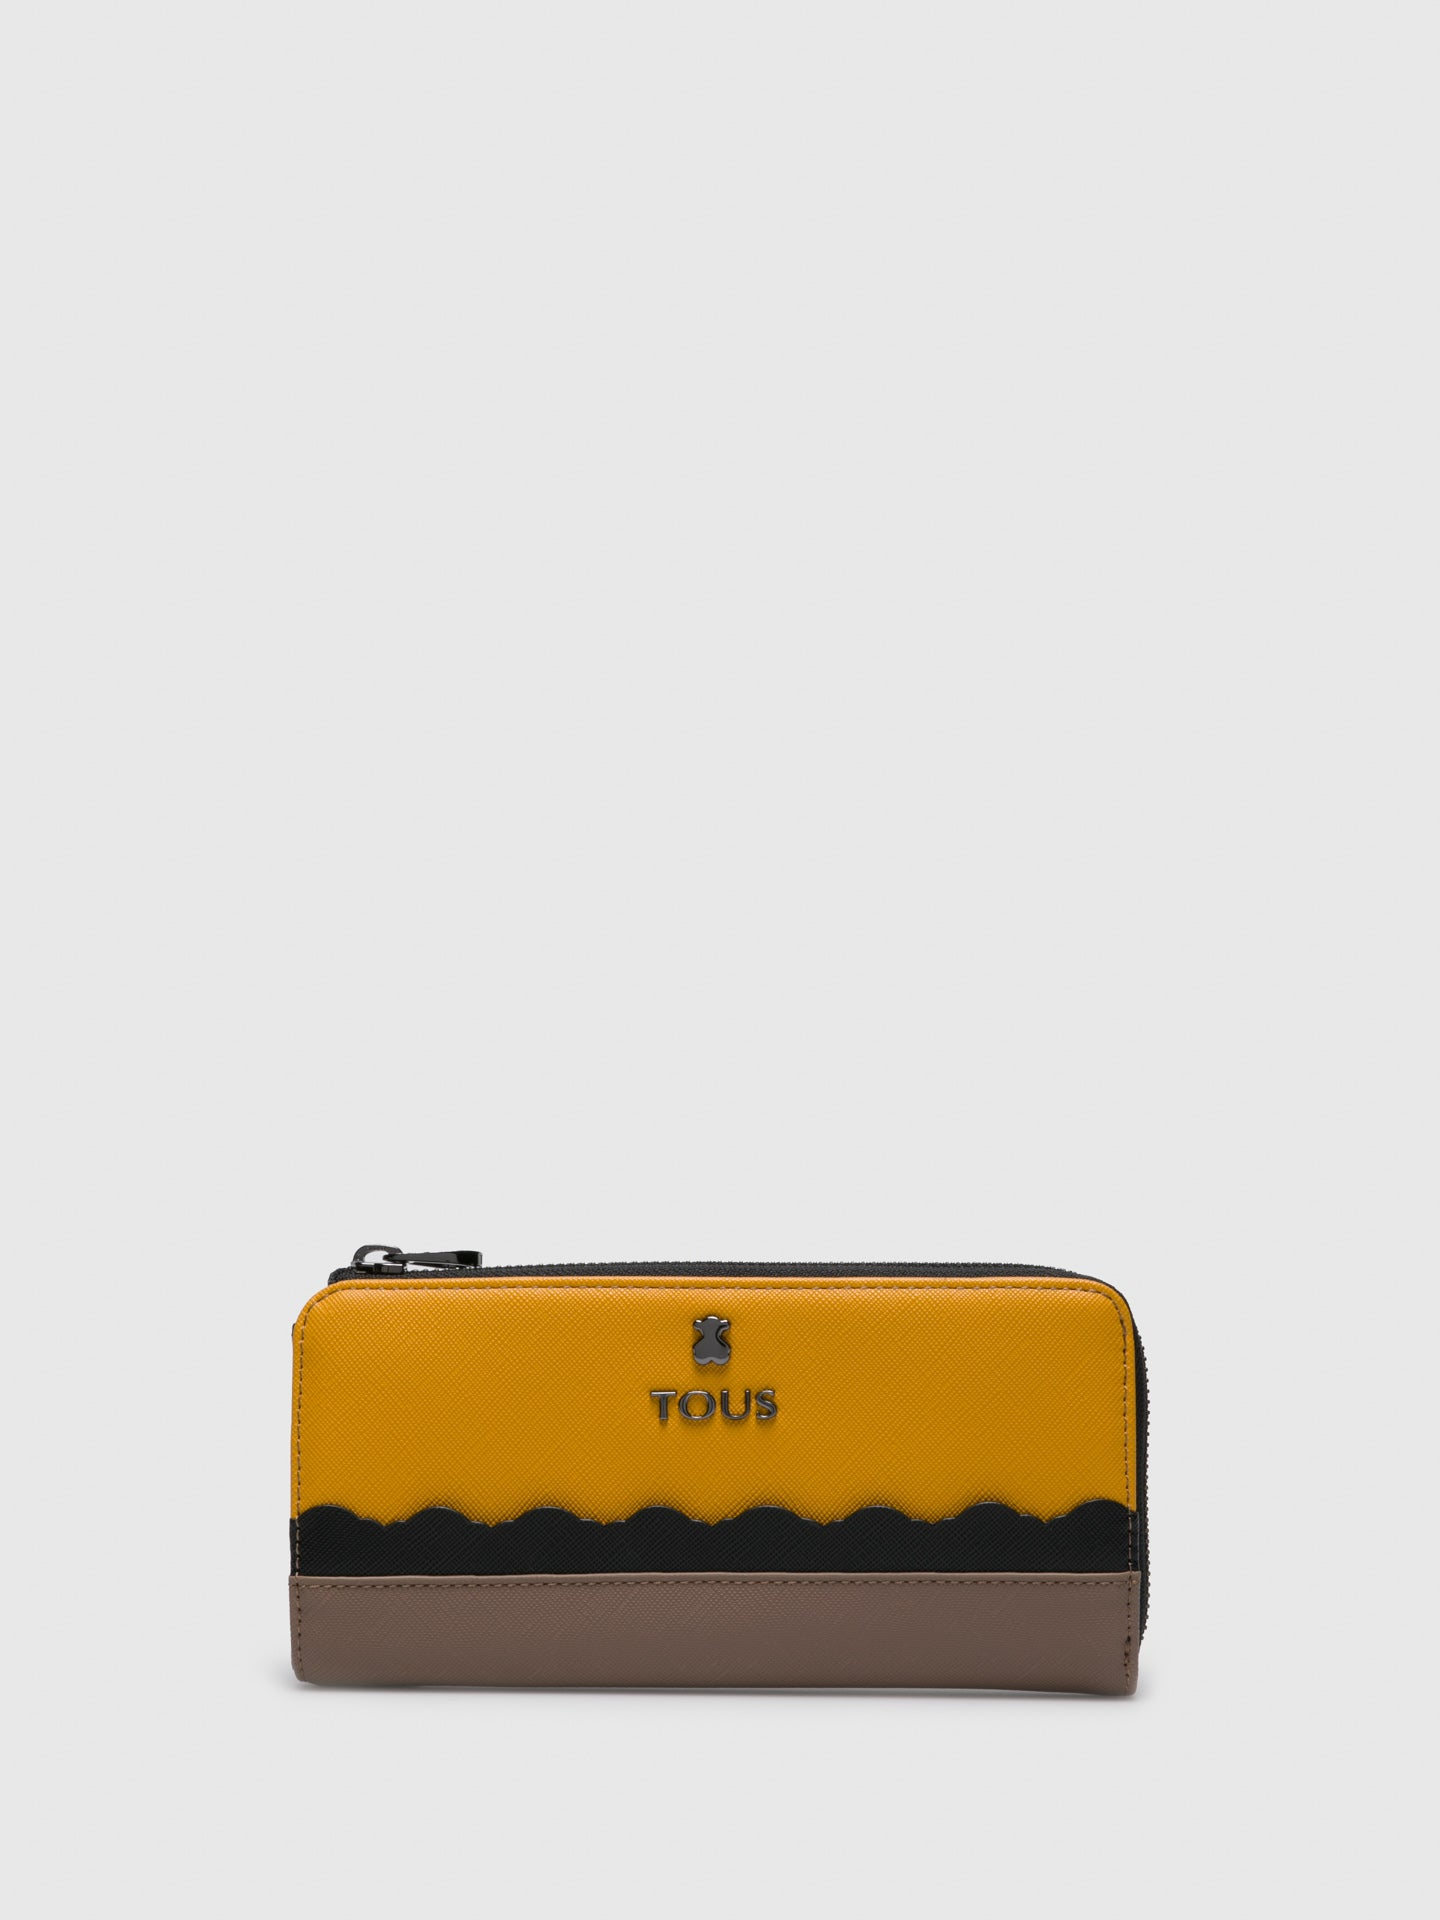 TOUS Cartera en color Amarillo Negro